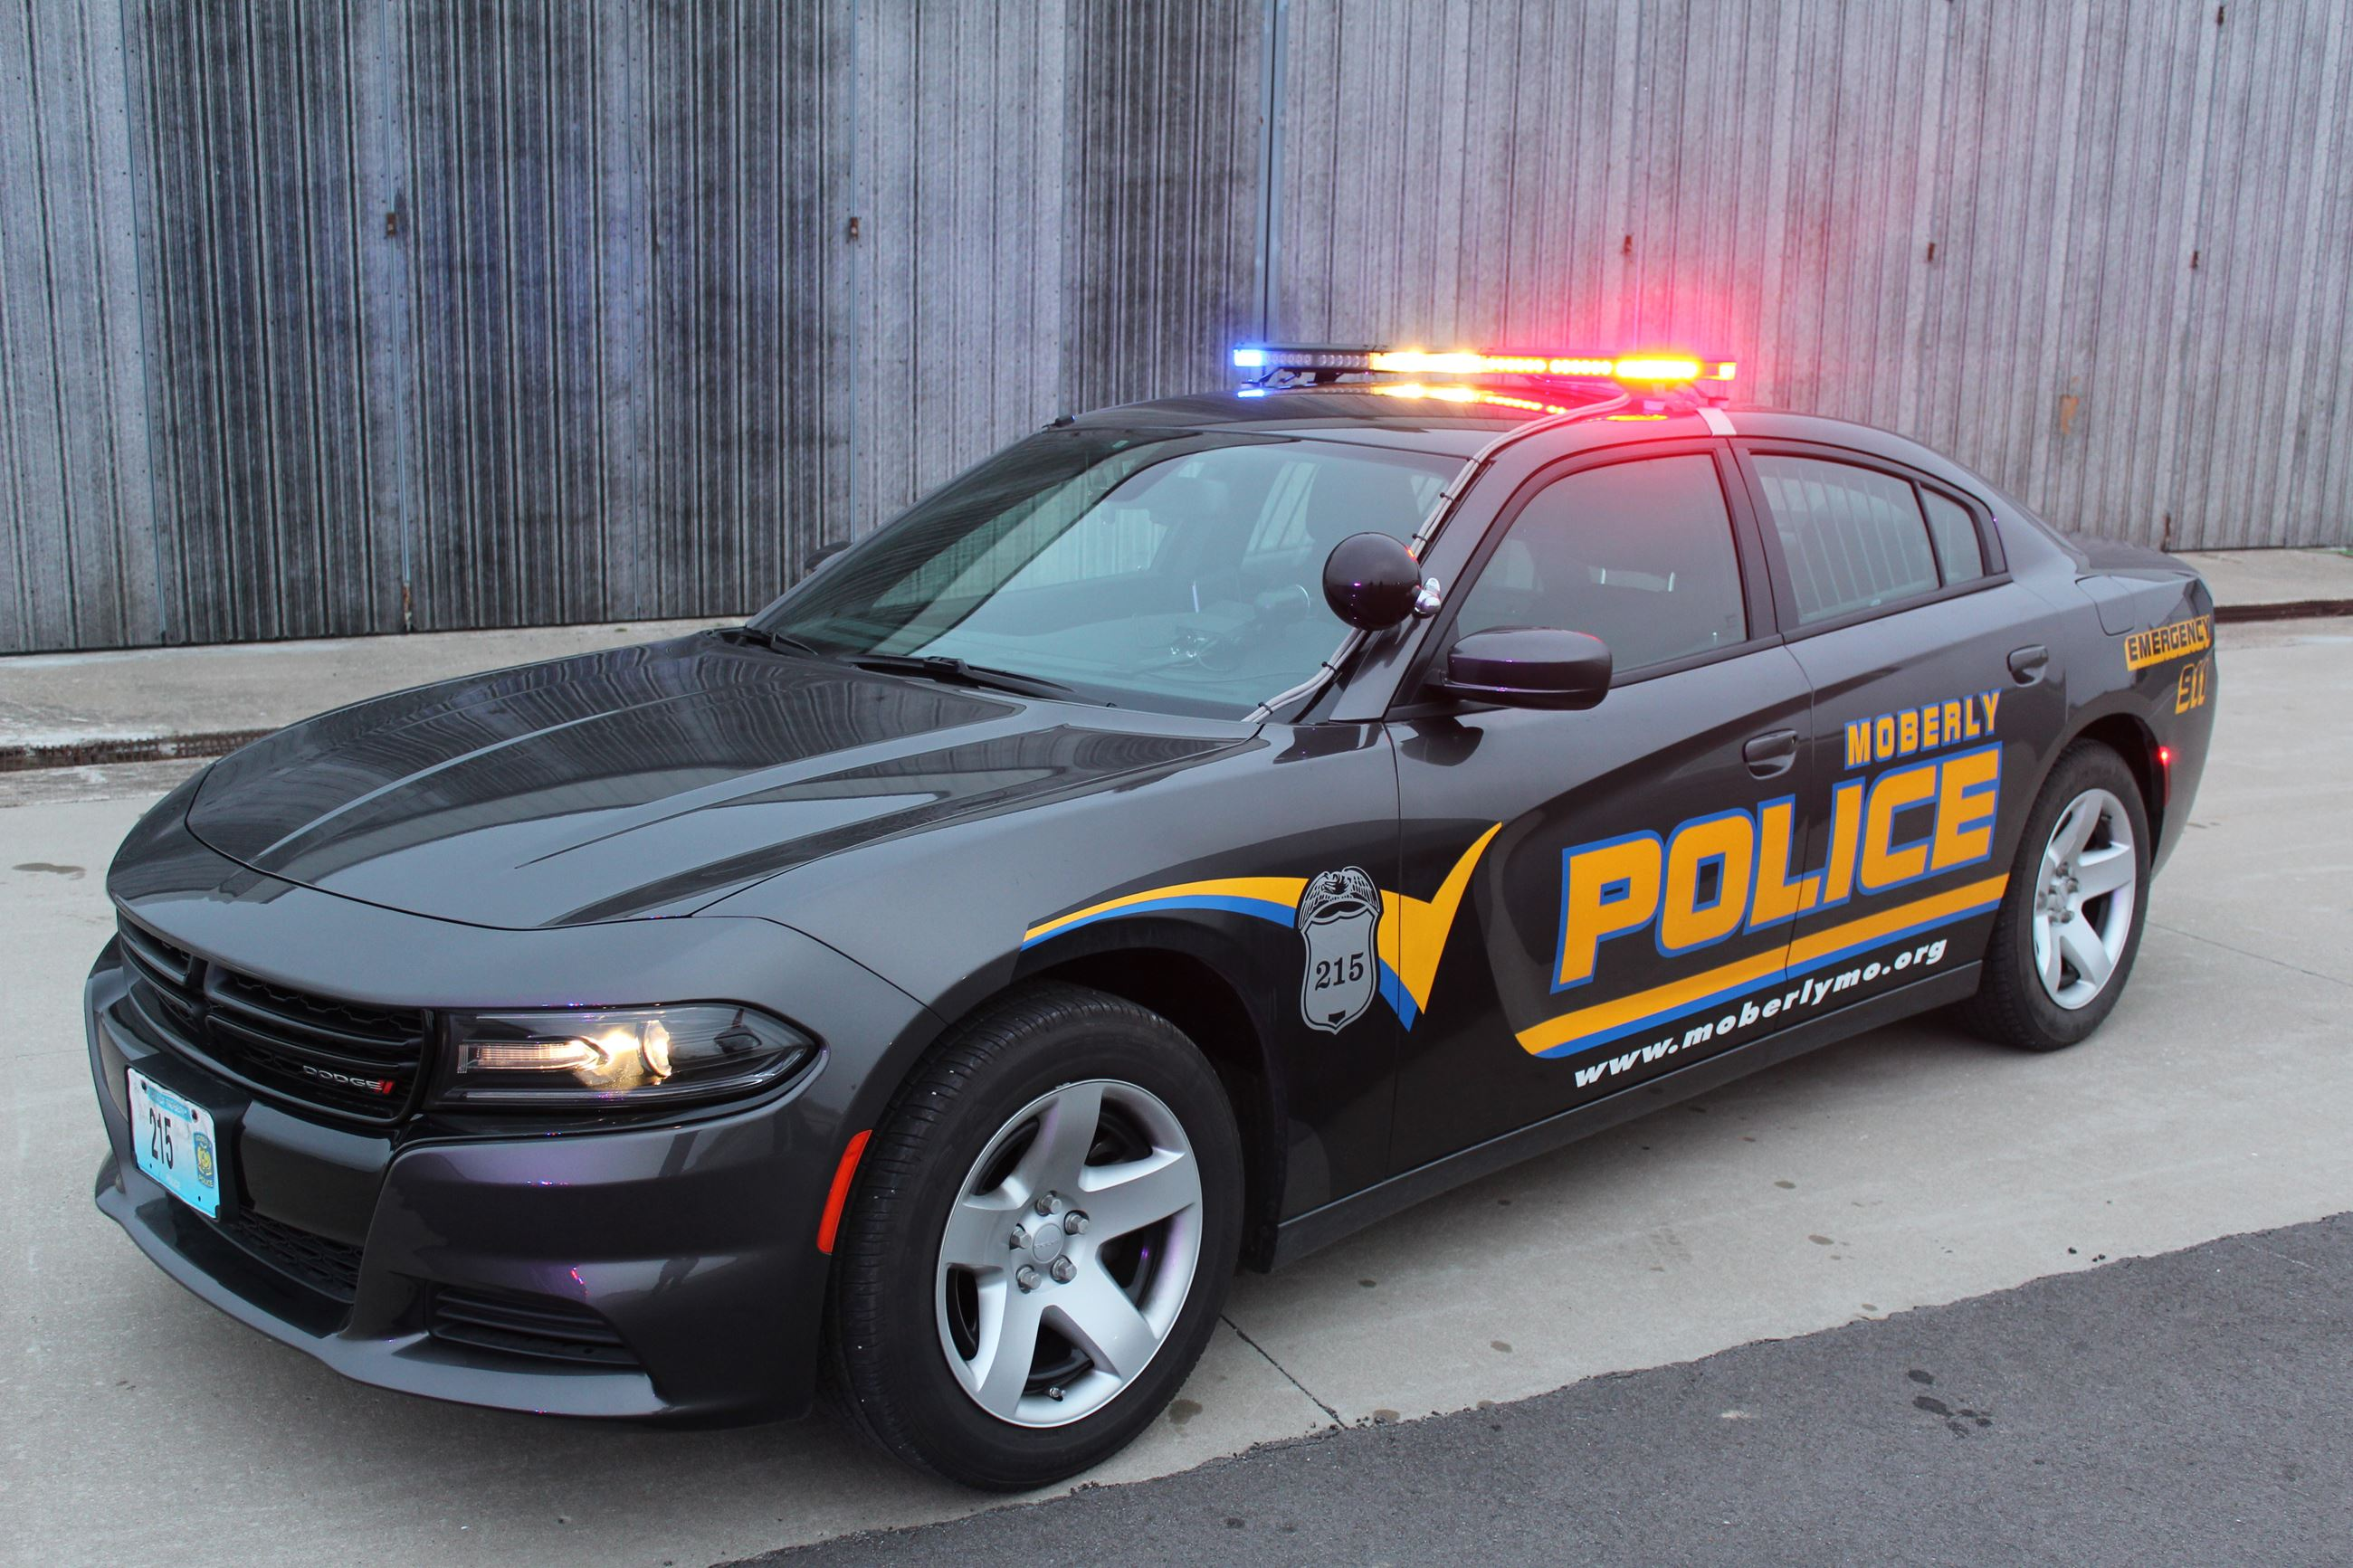 Image of Moberly Patrol Car